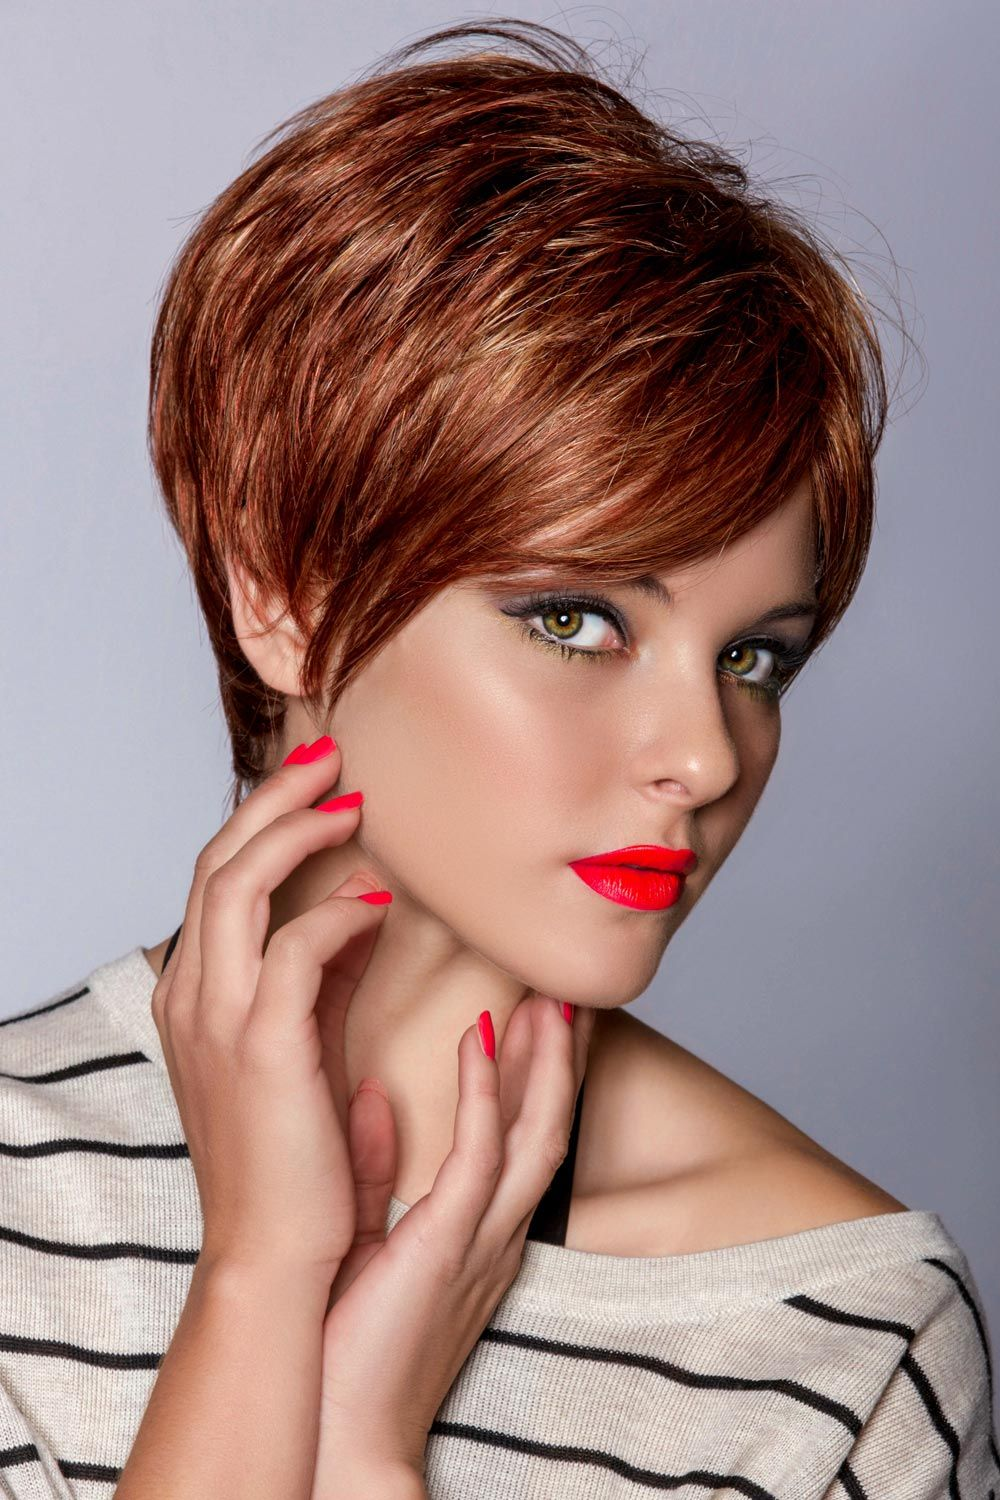 Schicke Kurzhaarfrisuren Für Damen Haircut Style Hair - Schicke Frisuren